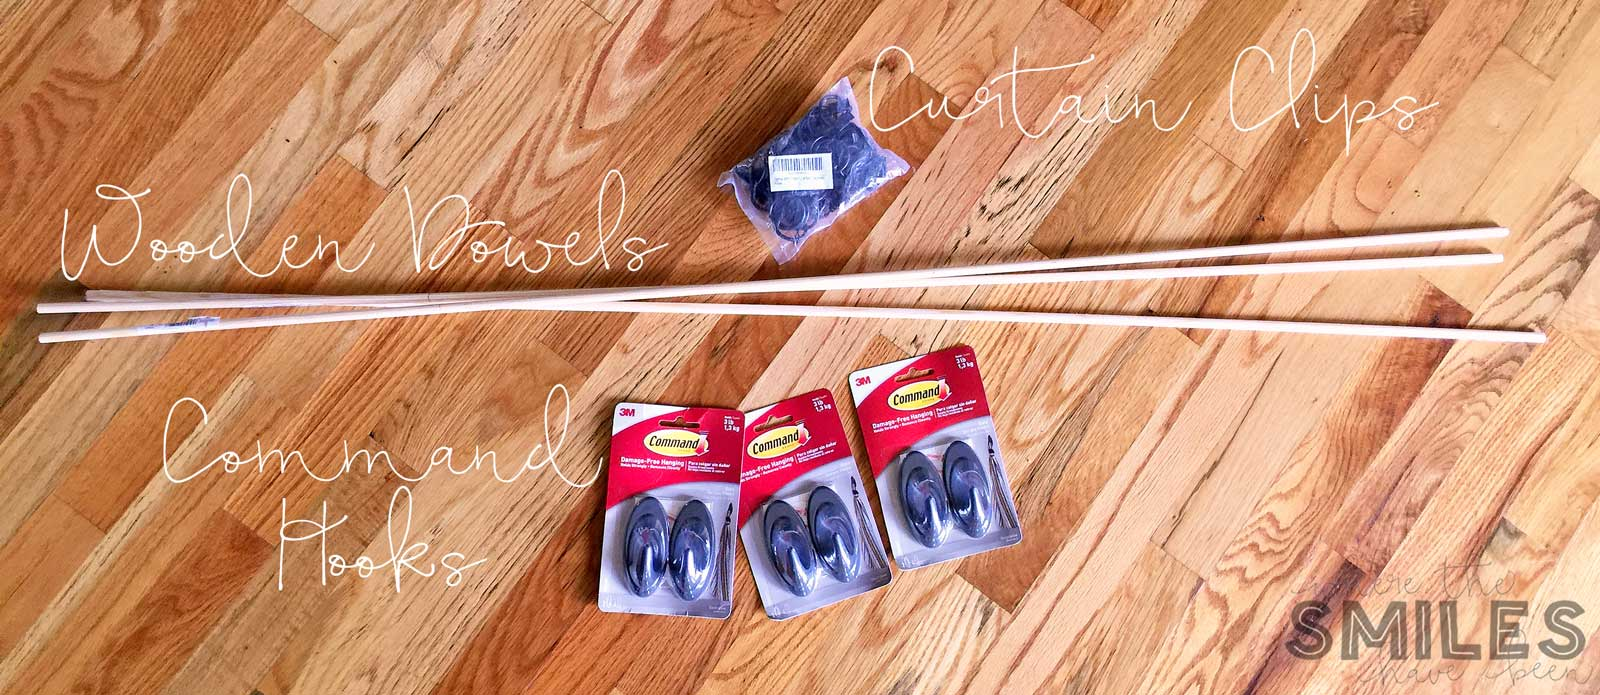 Supplies for an Easy DIY Kids Art Display: dowels, Command Hooks, and curtain clips.